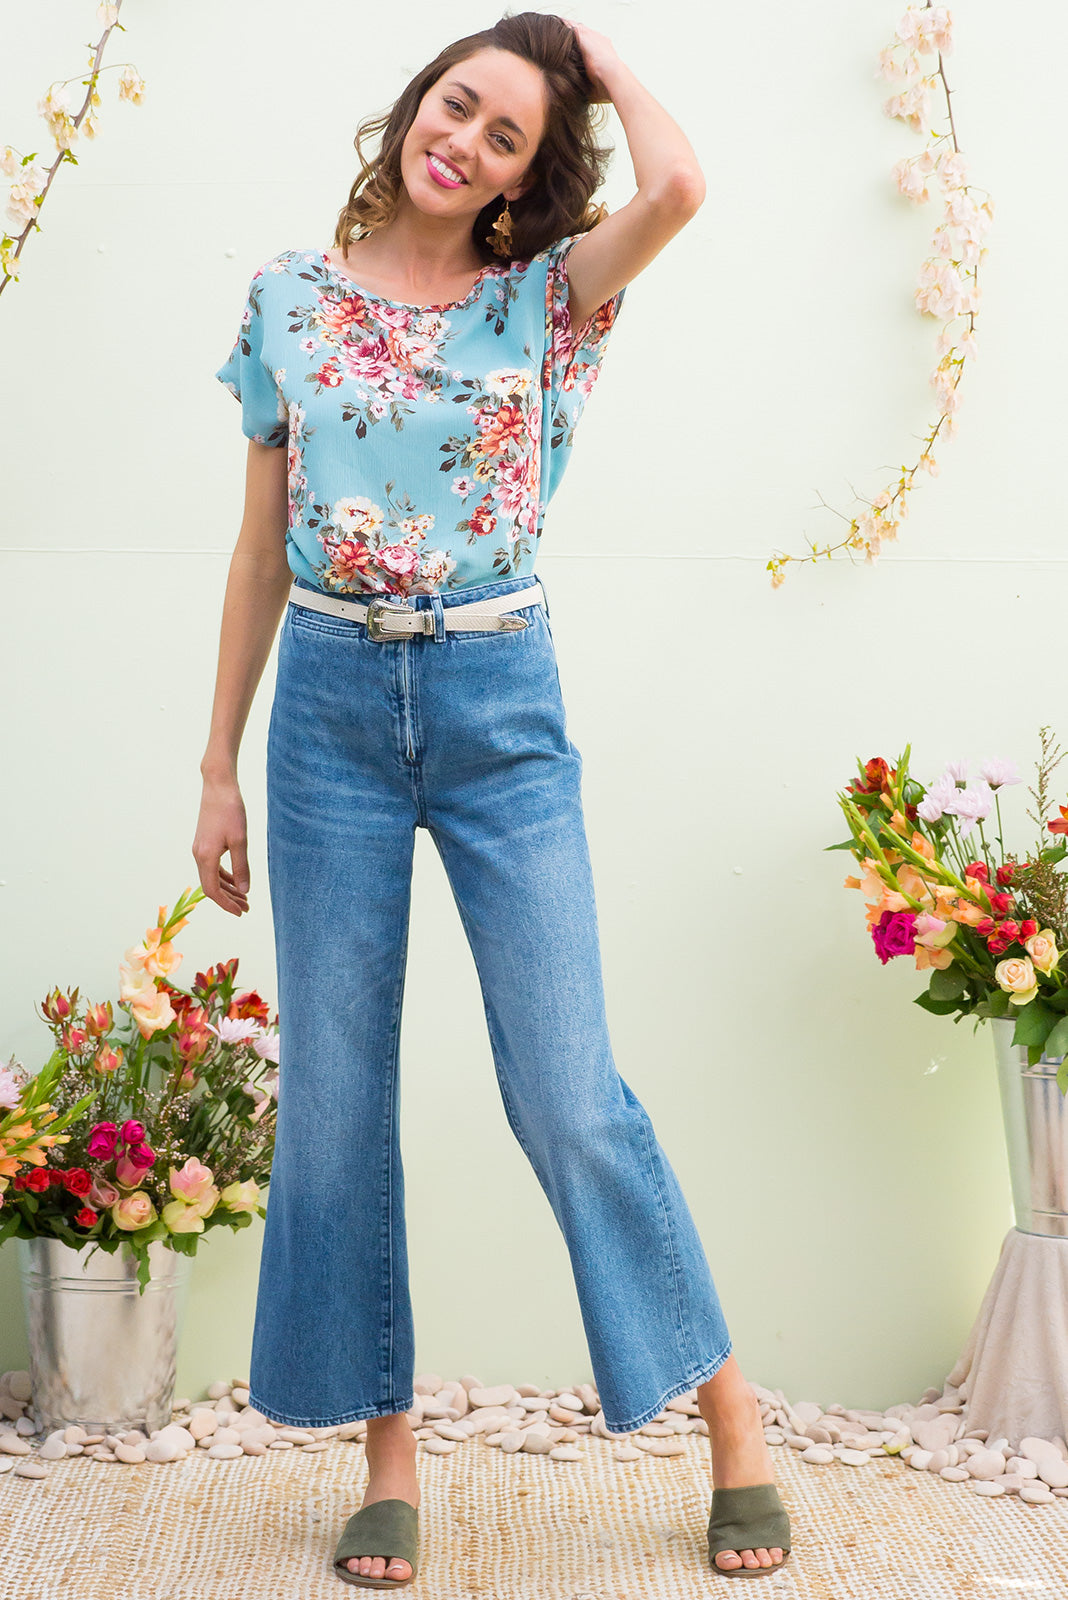 Sugar High crinkle rayon relaxed fit longline boho top in a romantic rose floral print on warm sky blue